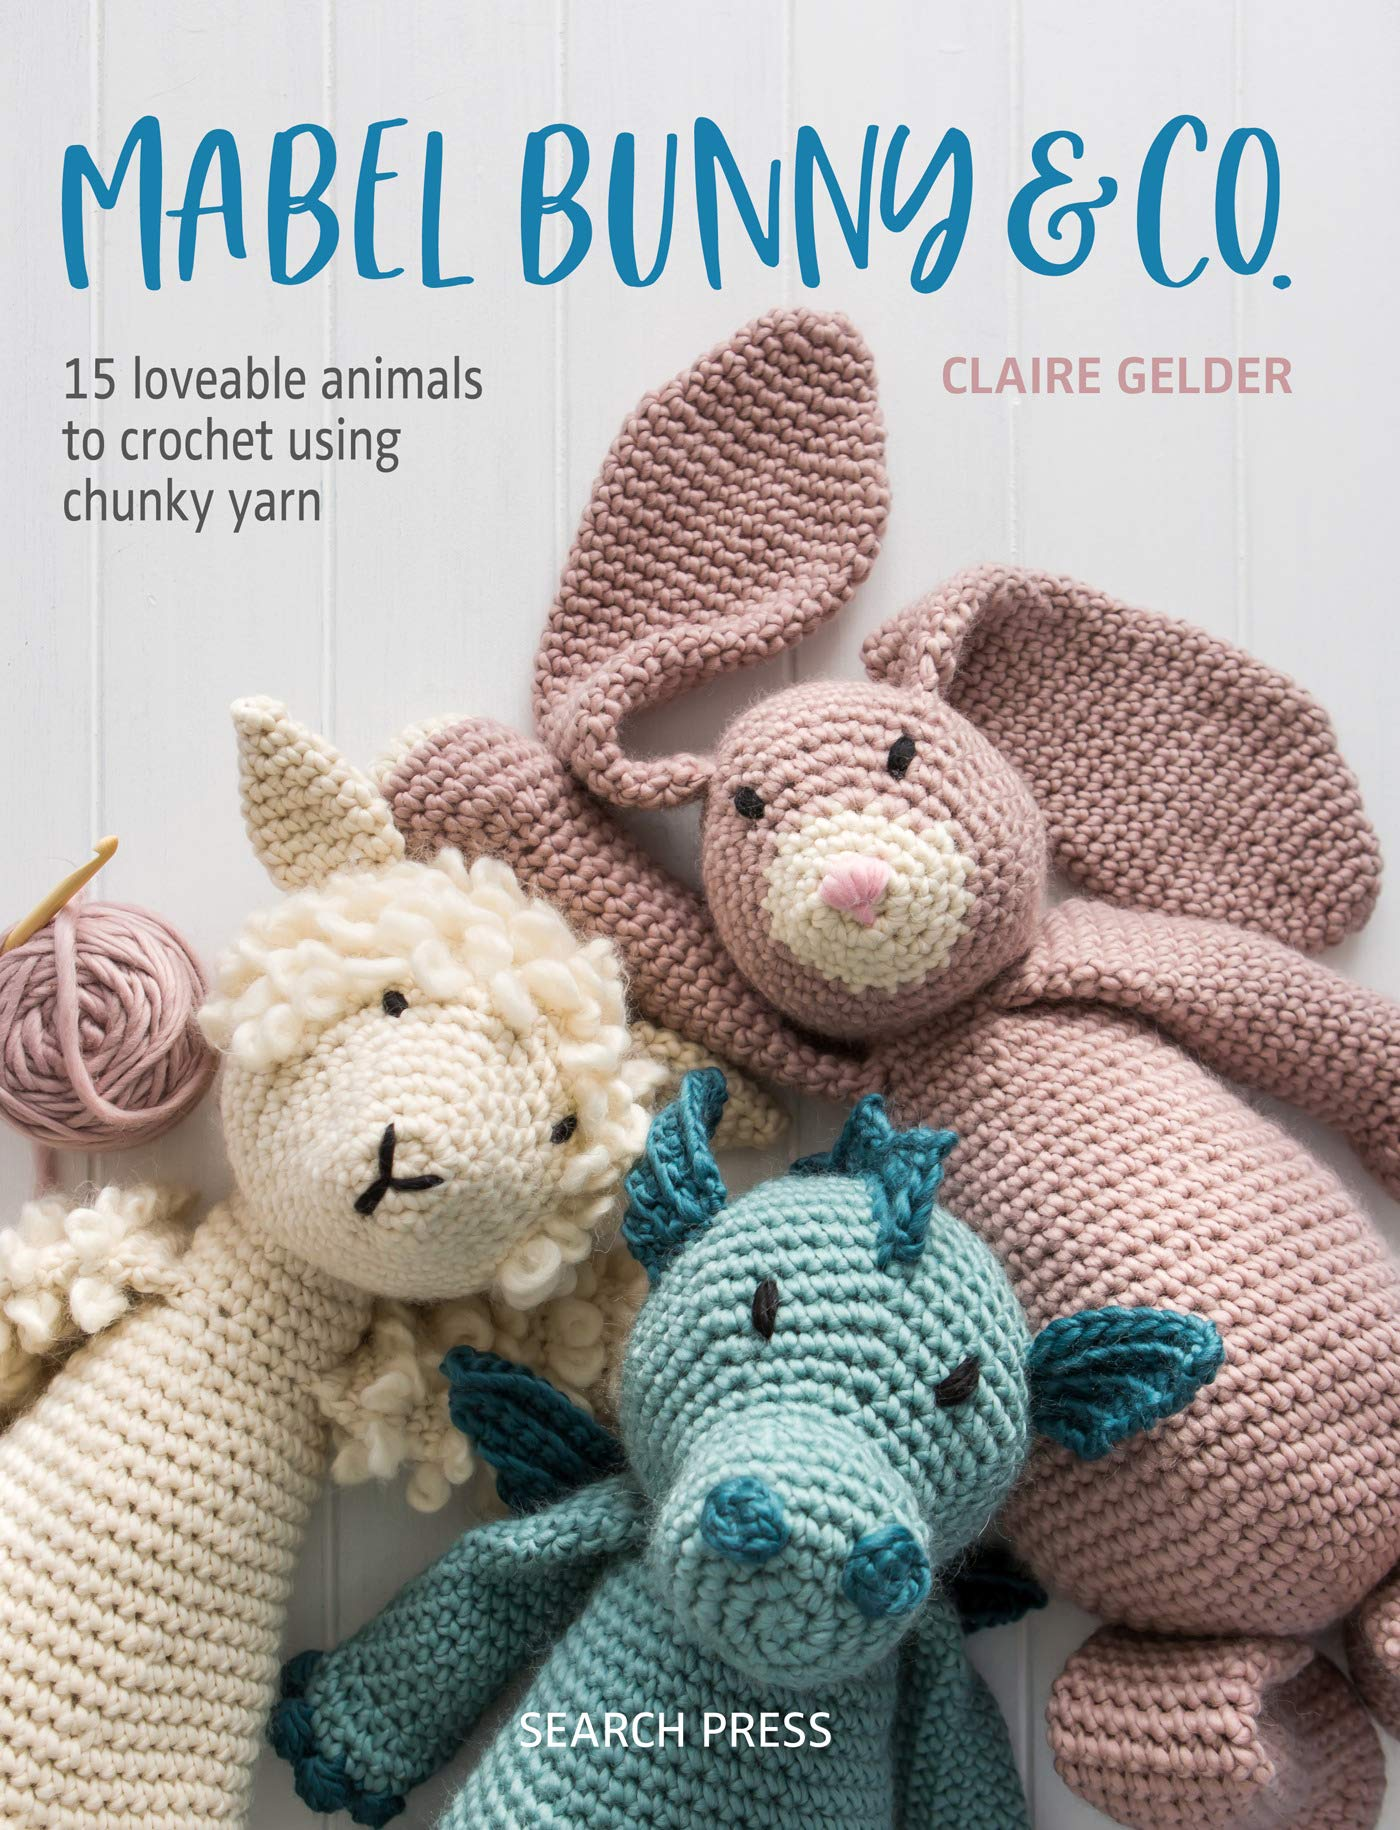 Tiny teddy bear crochet pattern | Amiguroom Toys | 1830x1400